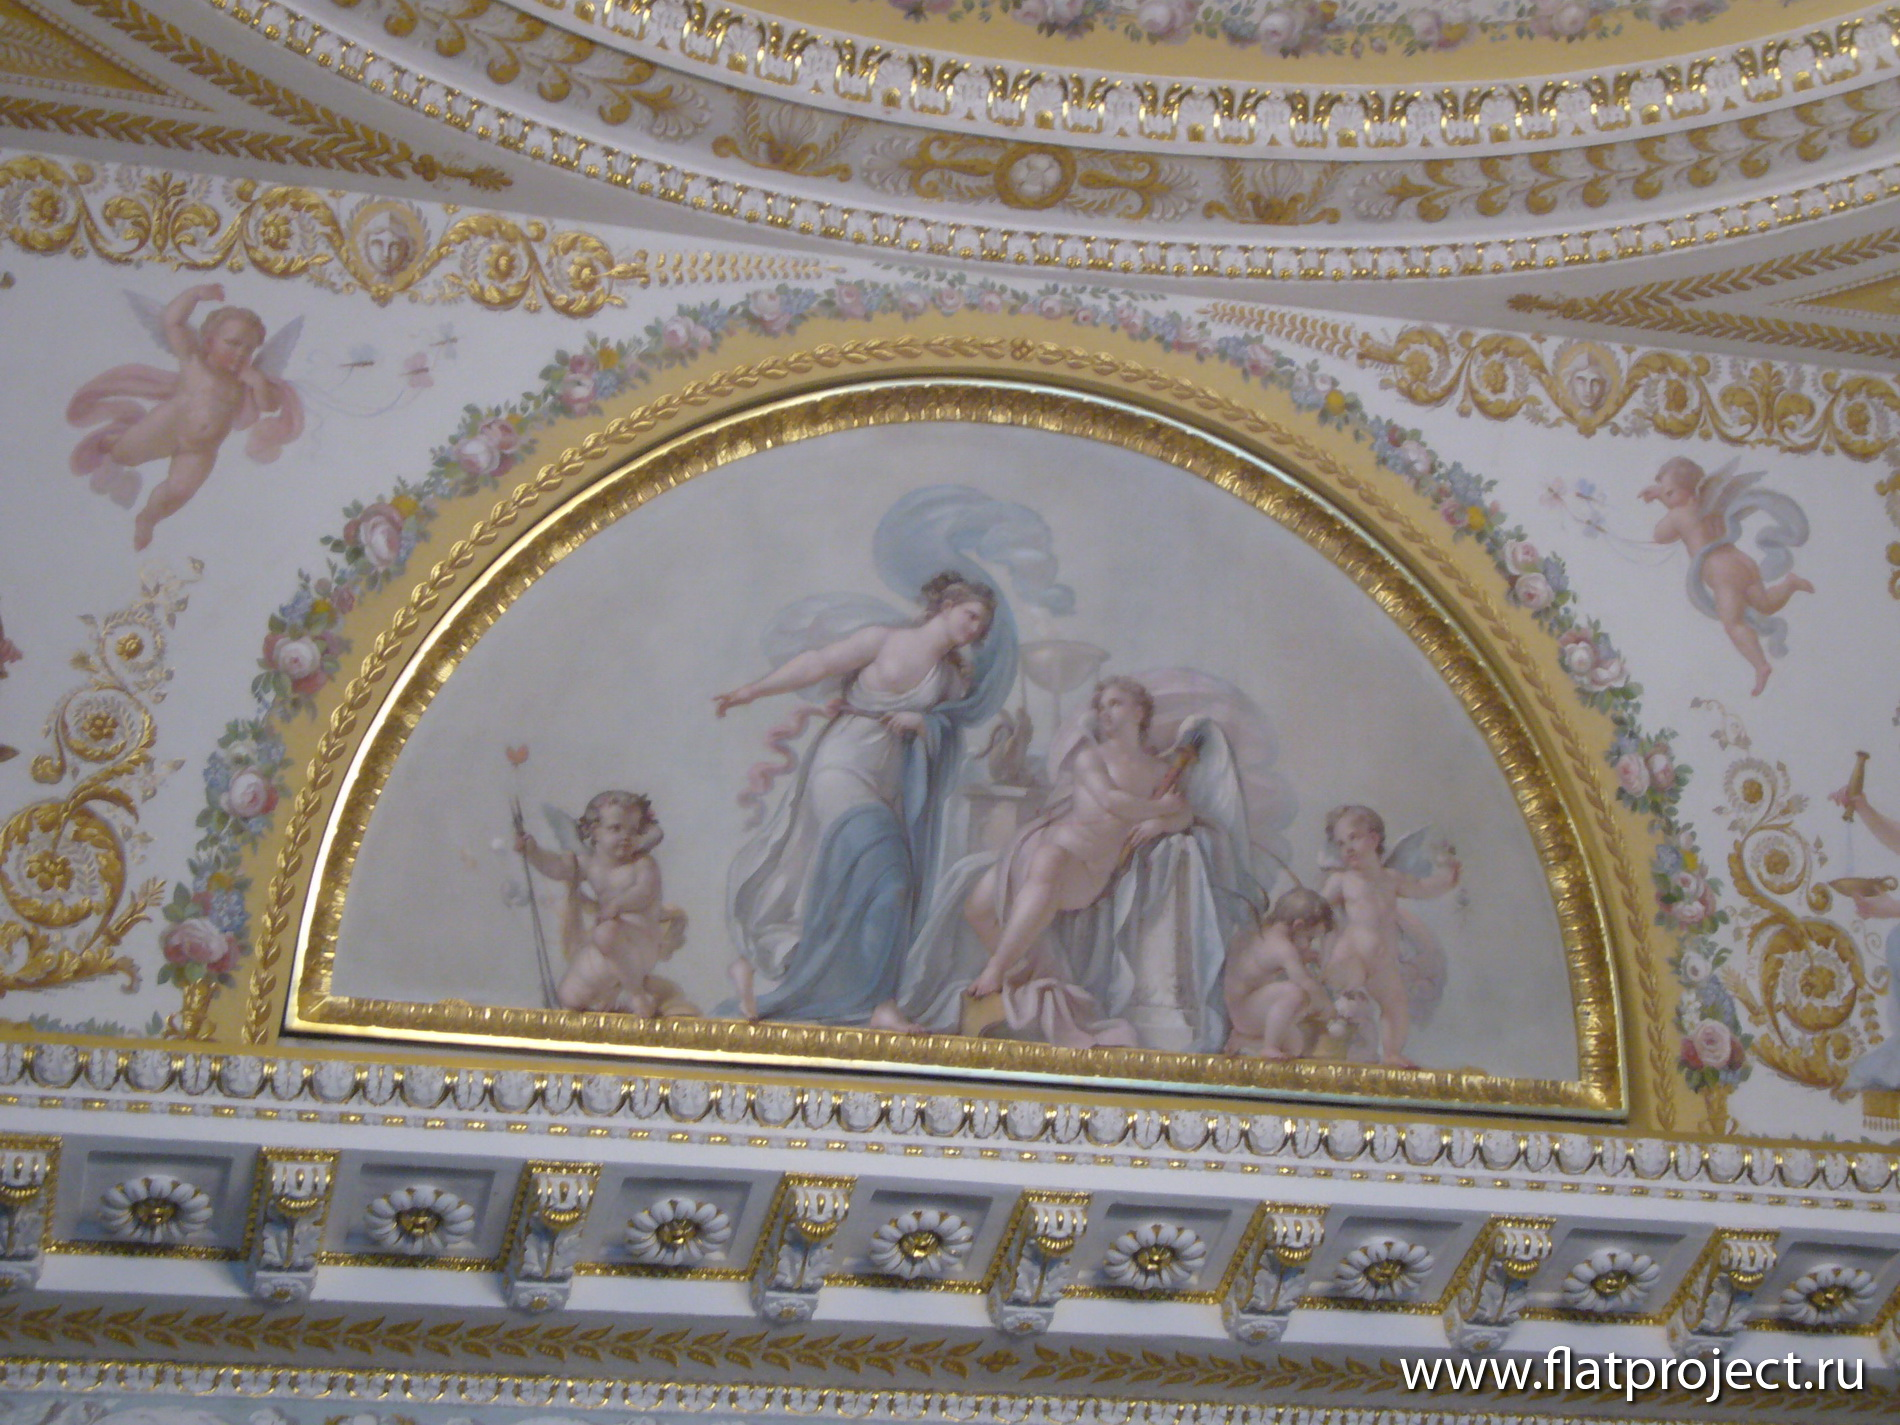 The State Russian museum interiors – photo 63